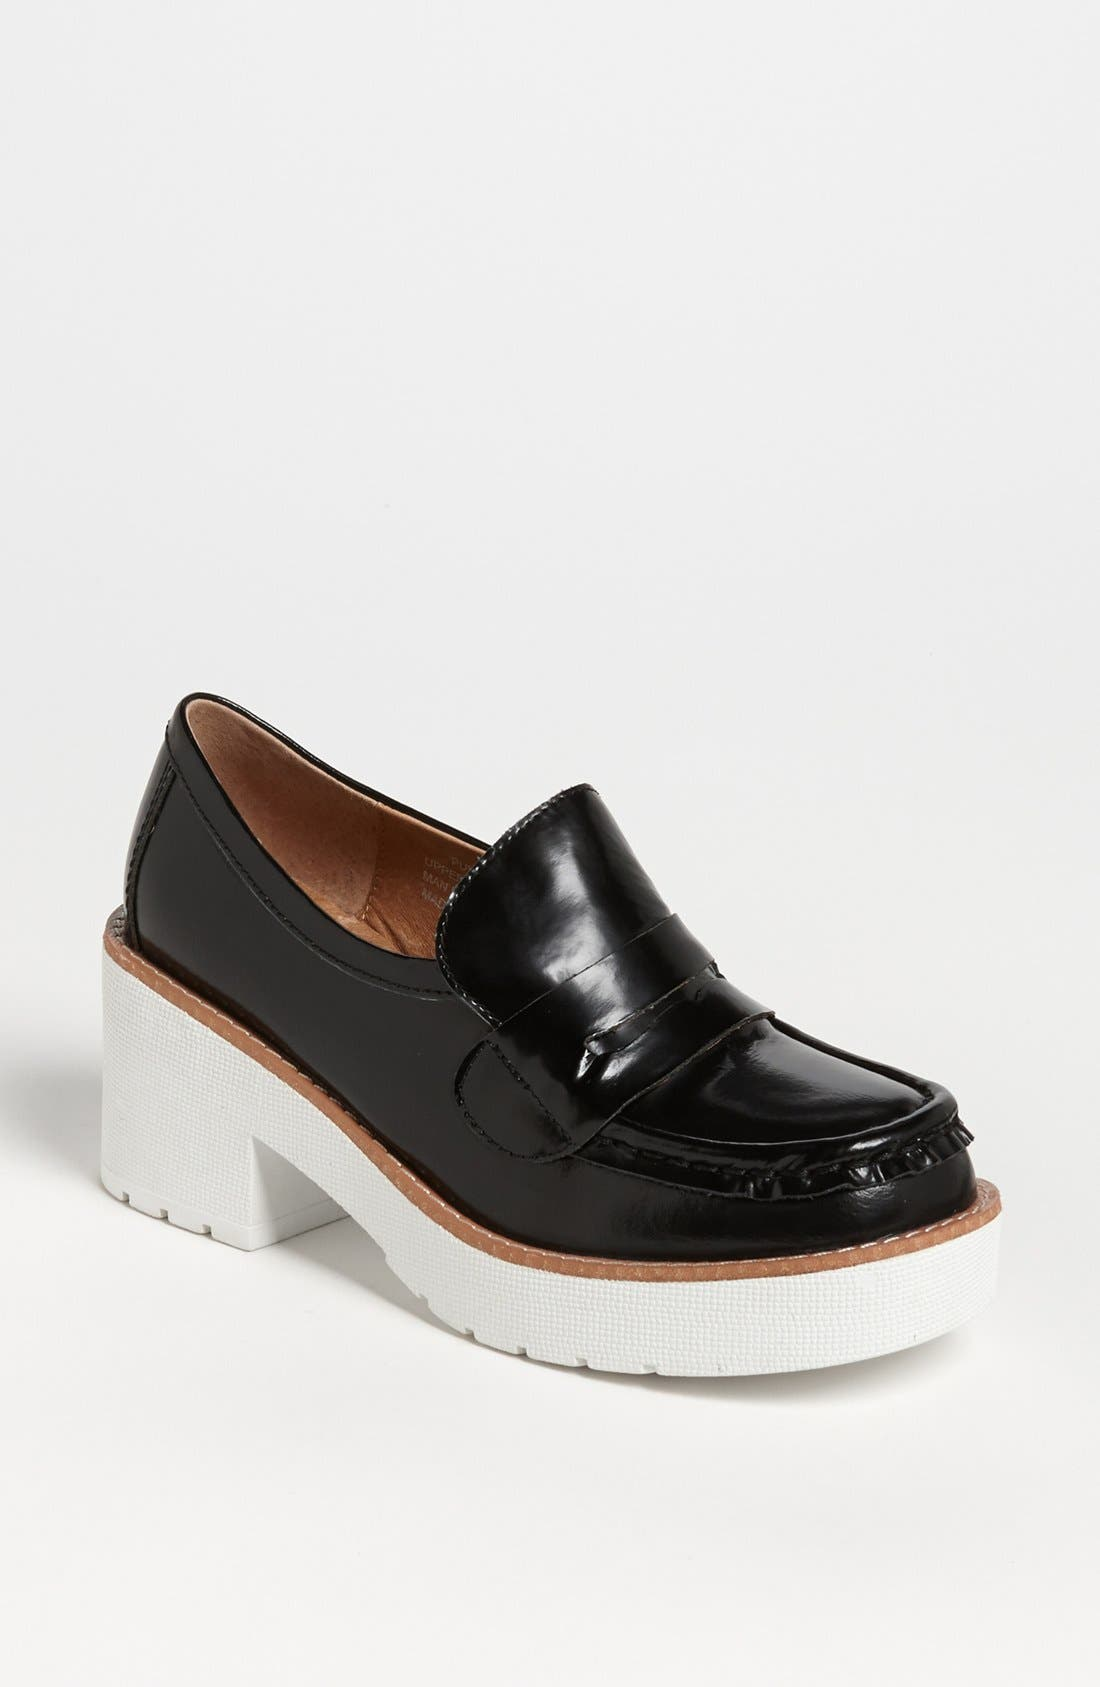 Main Image - Jeffrey Campbell 'Purvis' Loafer